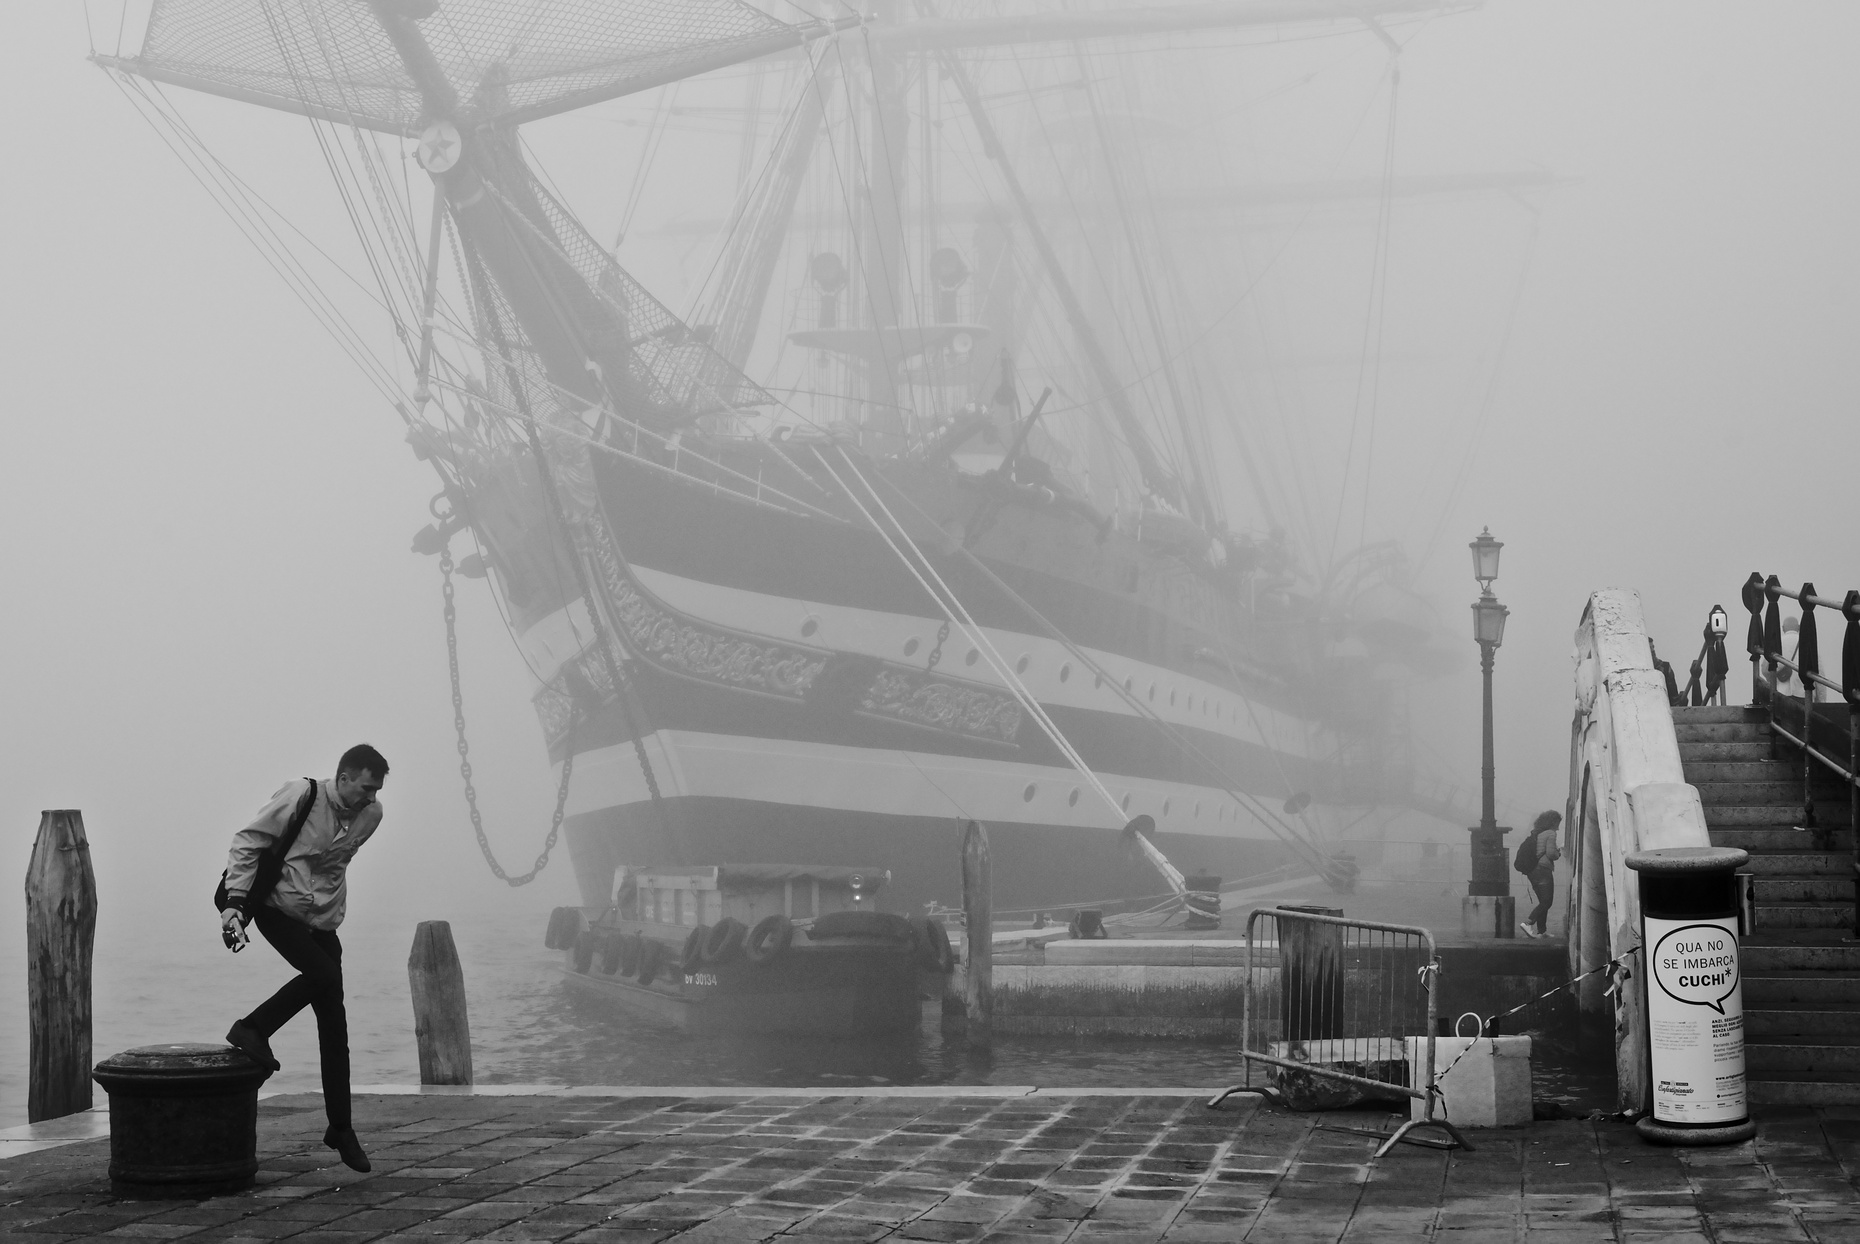 Tall ship Amerigo Vespucci in the morning fog in Venice, with man stepping down from mooring bitt in the foreground.